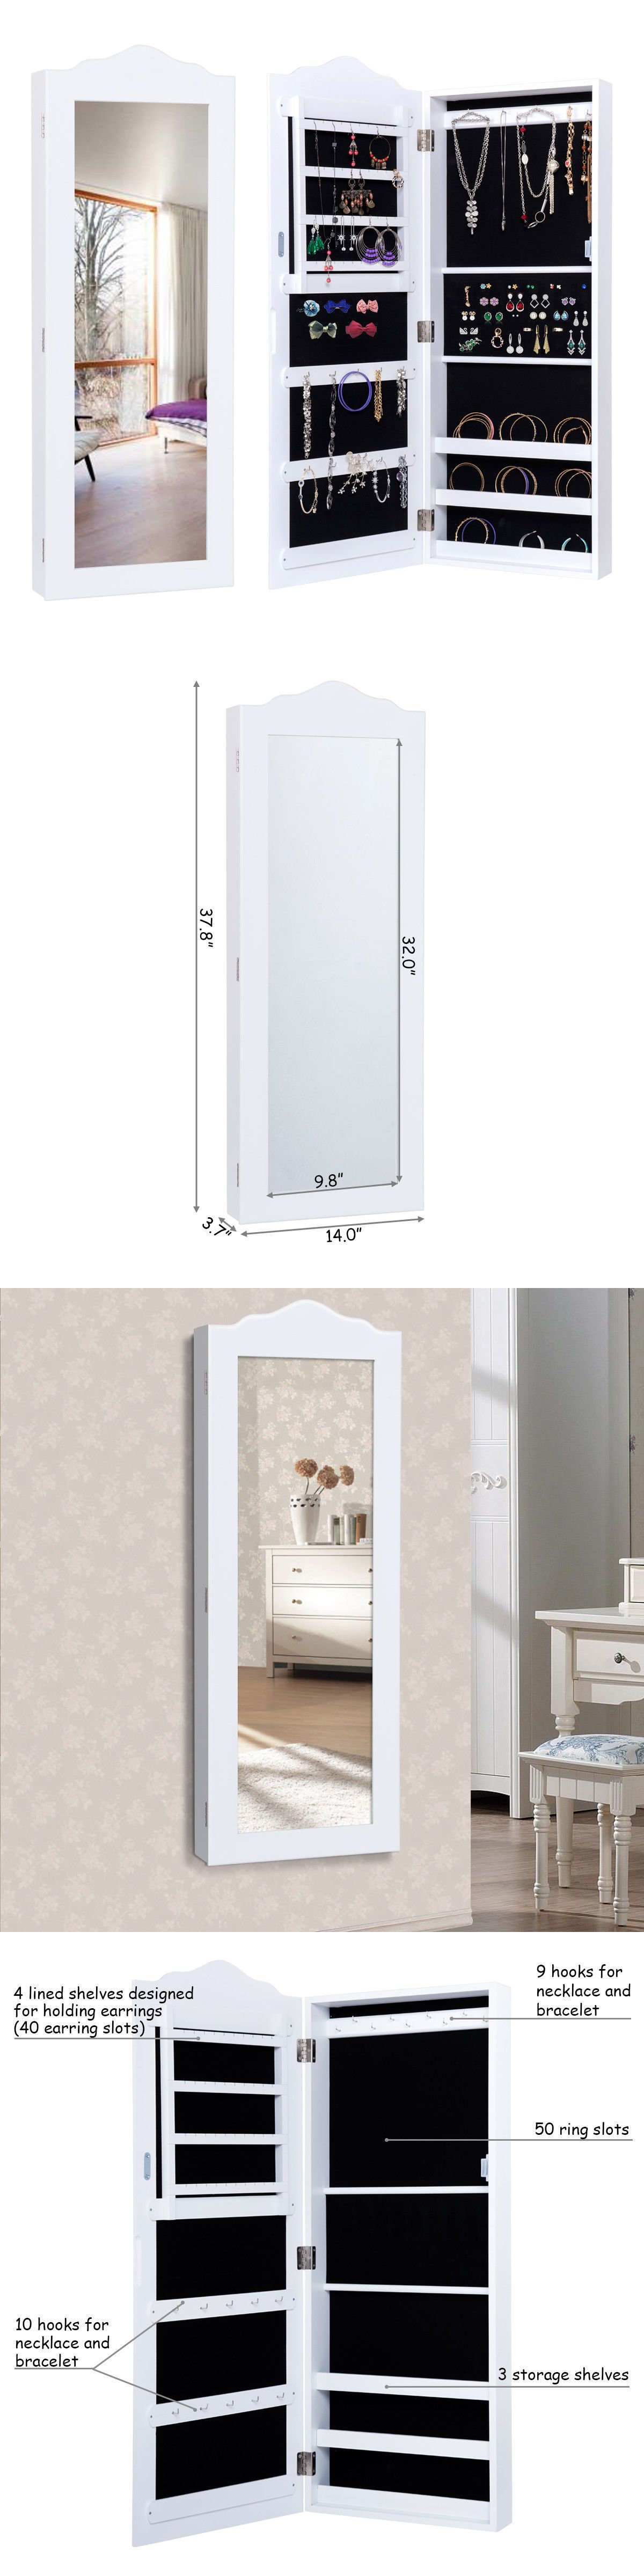 Jewelry Boxes 3820 Wall Mounted Mirrored Jewelry Cabinet Armoire